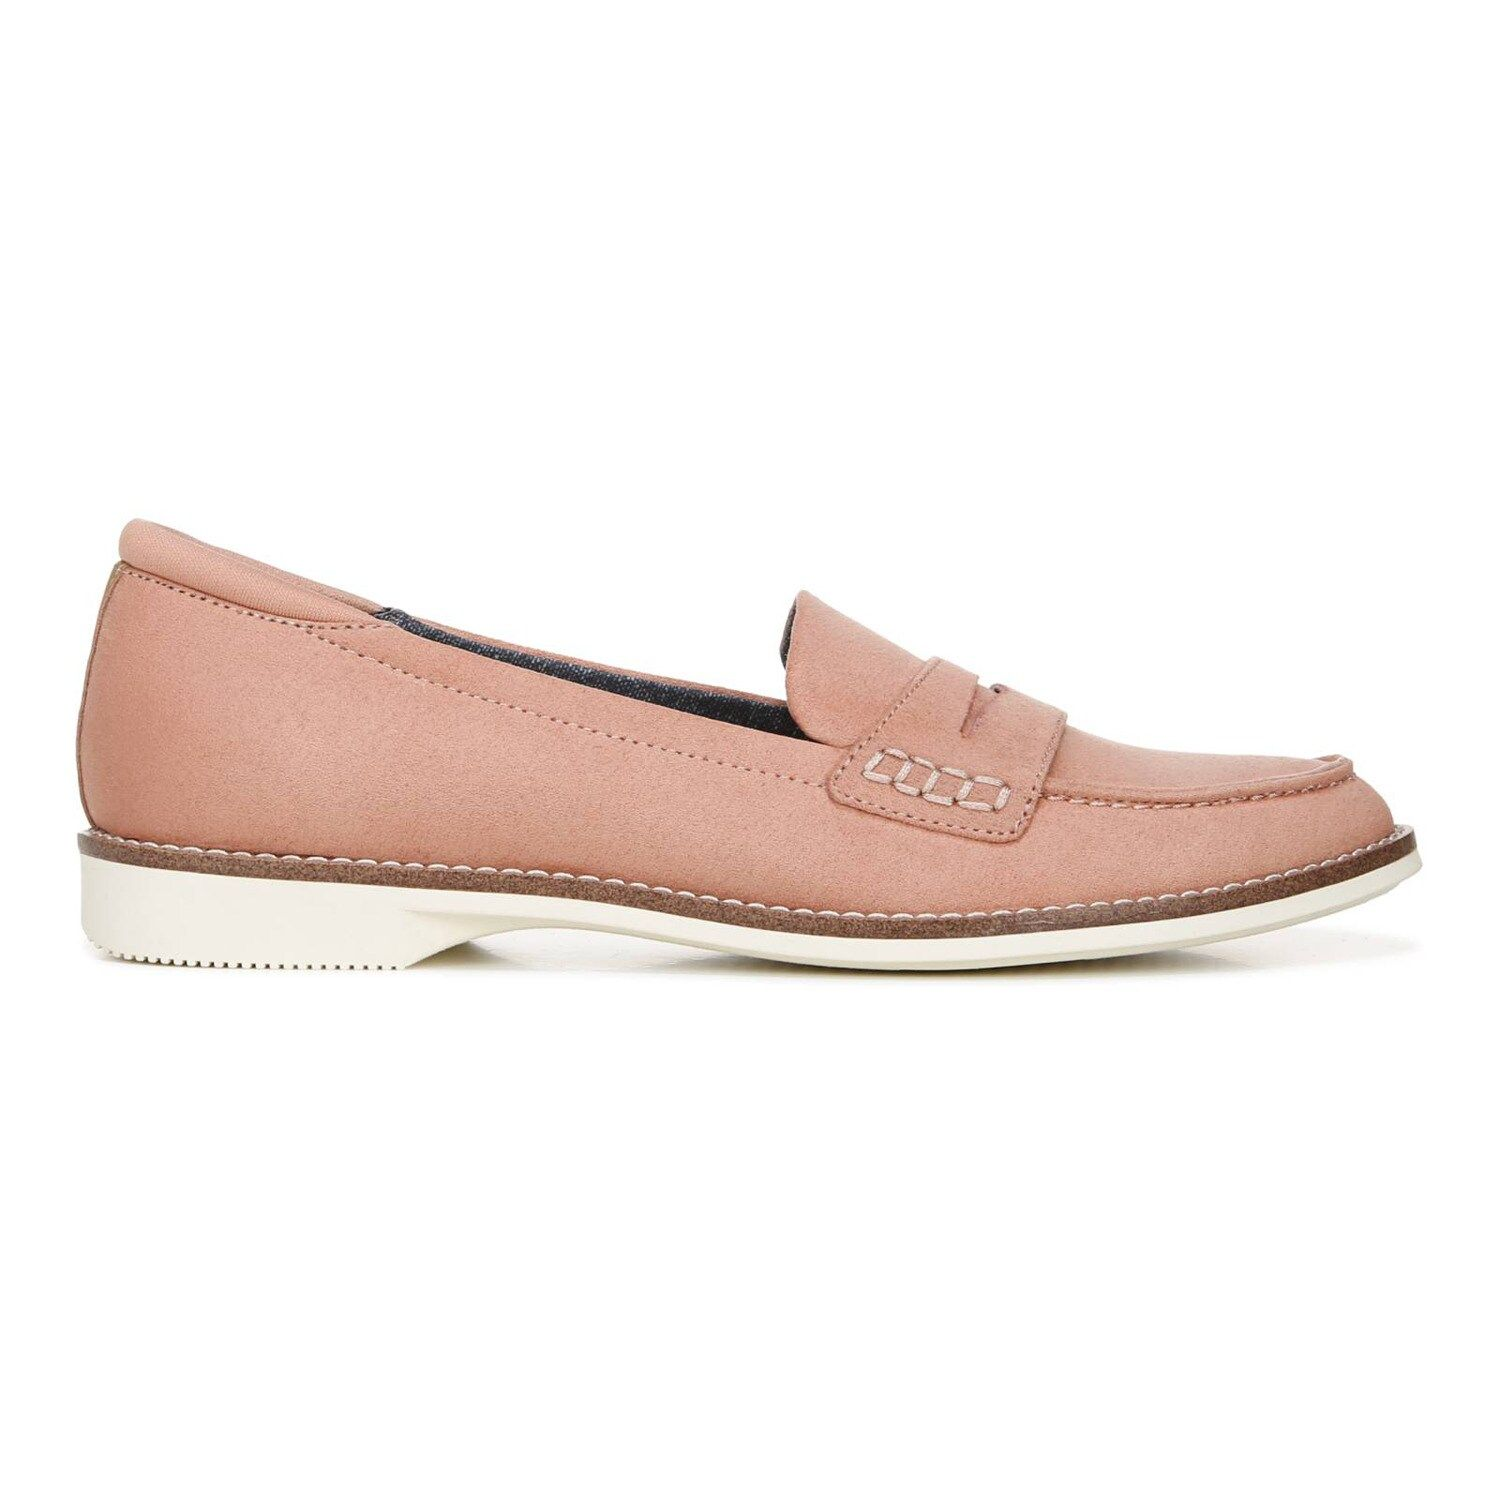 Loafers for women, Loafers